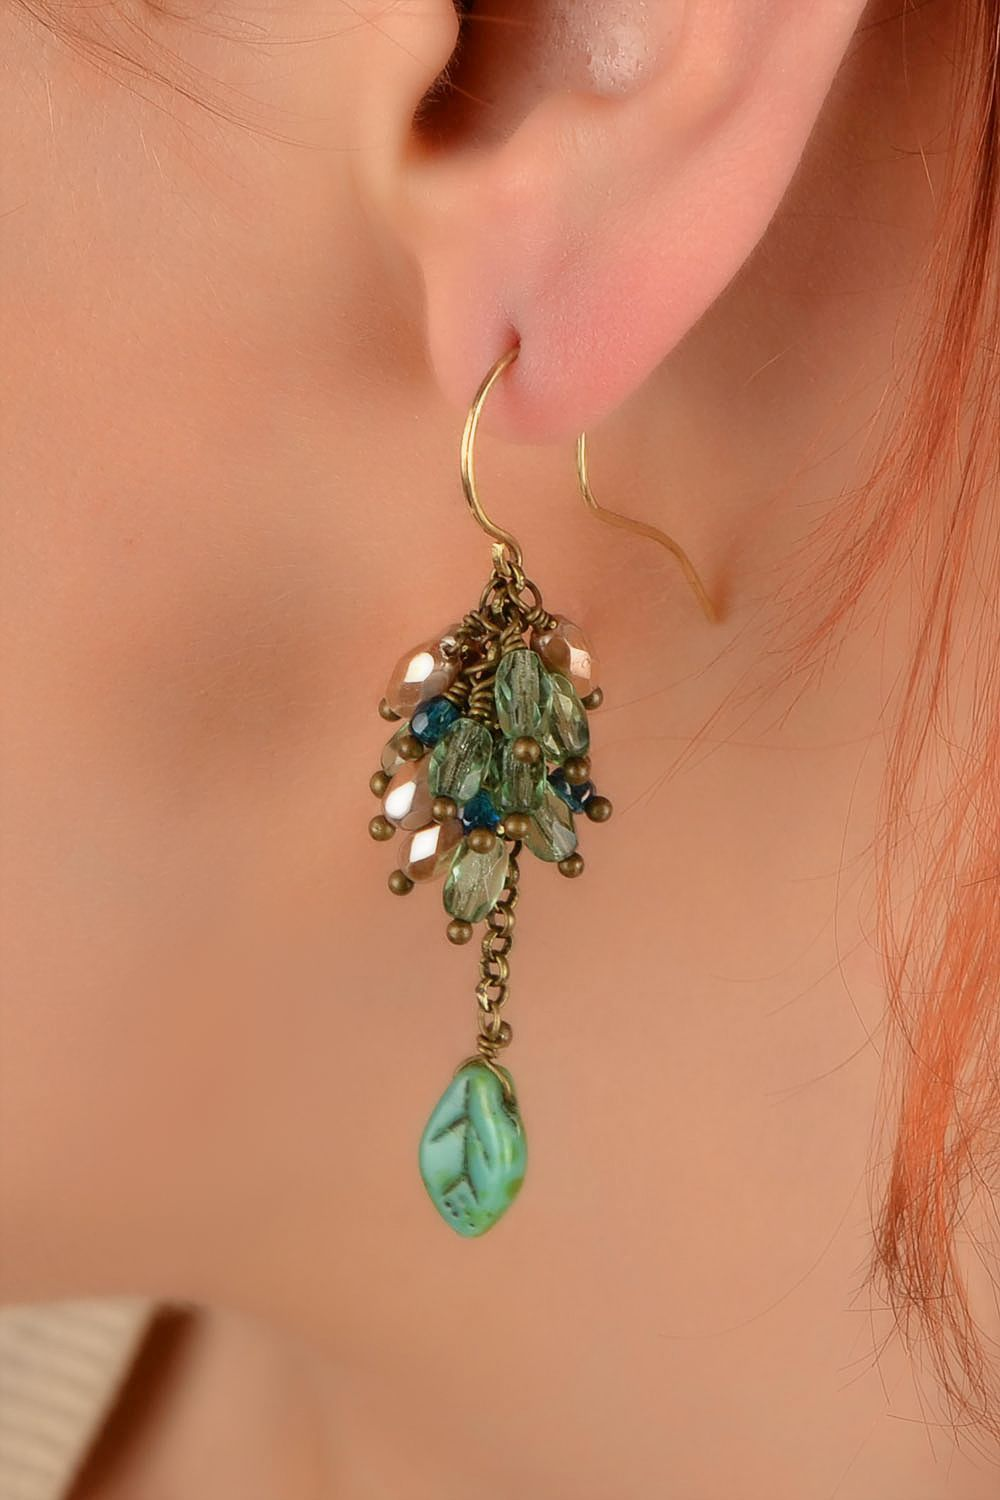 Unusual handmade beaded earrings cool jewelry beautiful jewellery fashion trends photo 5